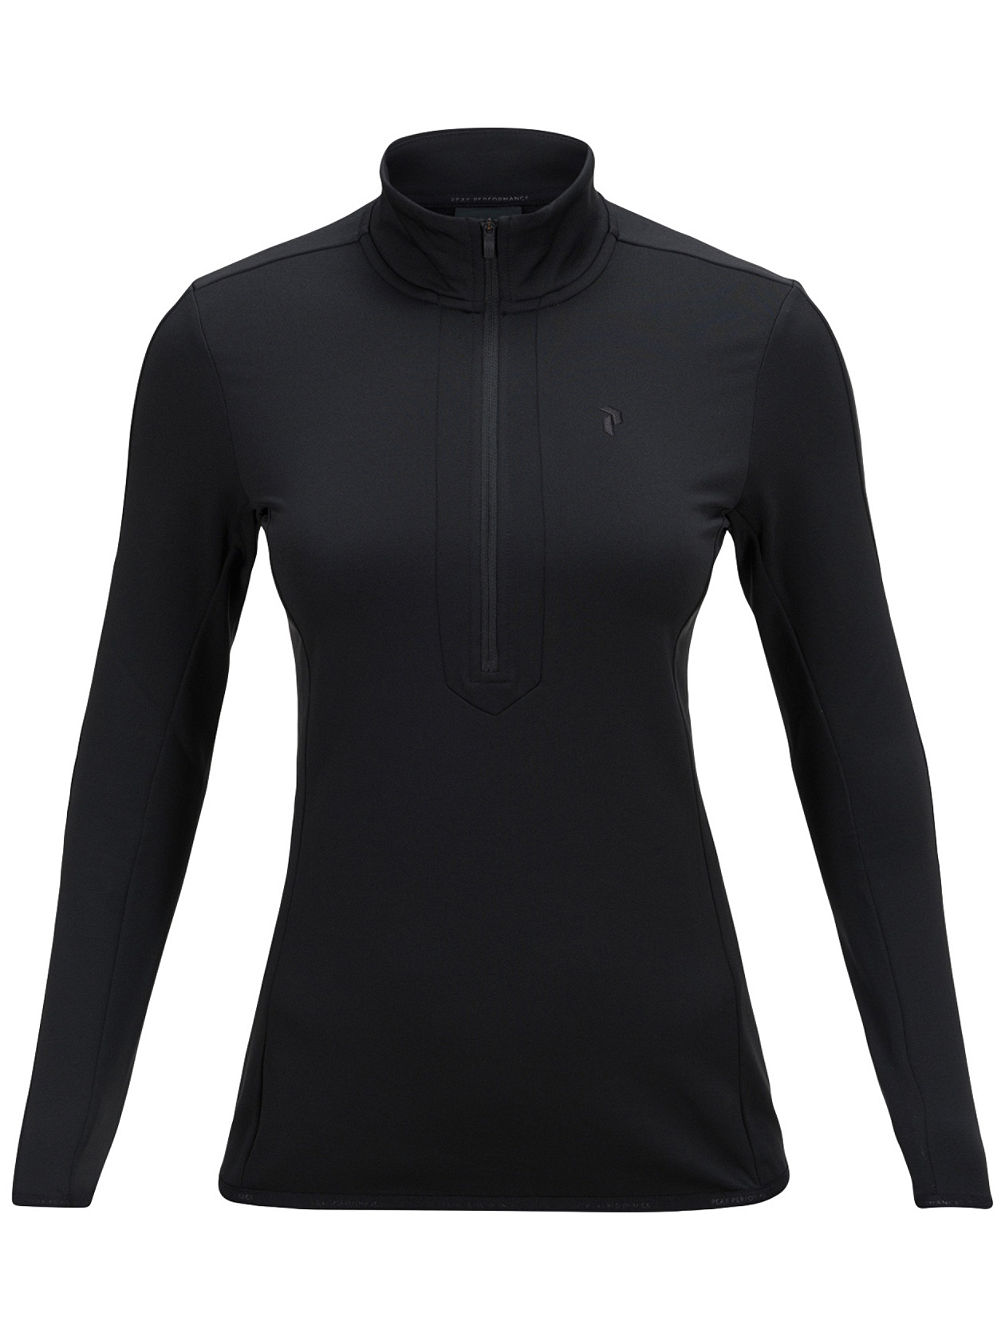 Golf Ace Half Zip Jersey polar